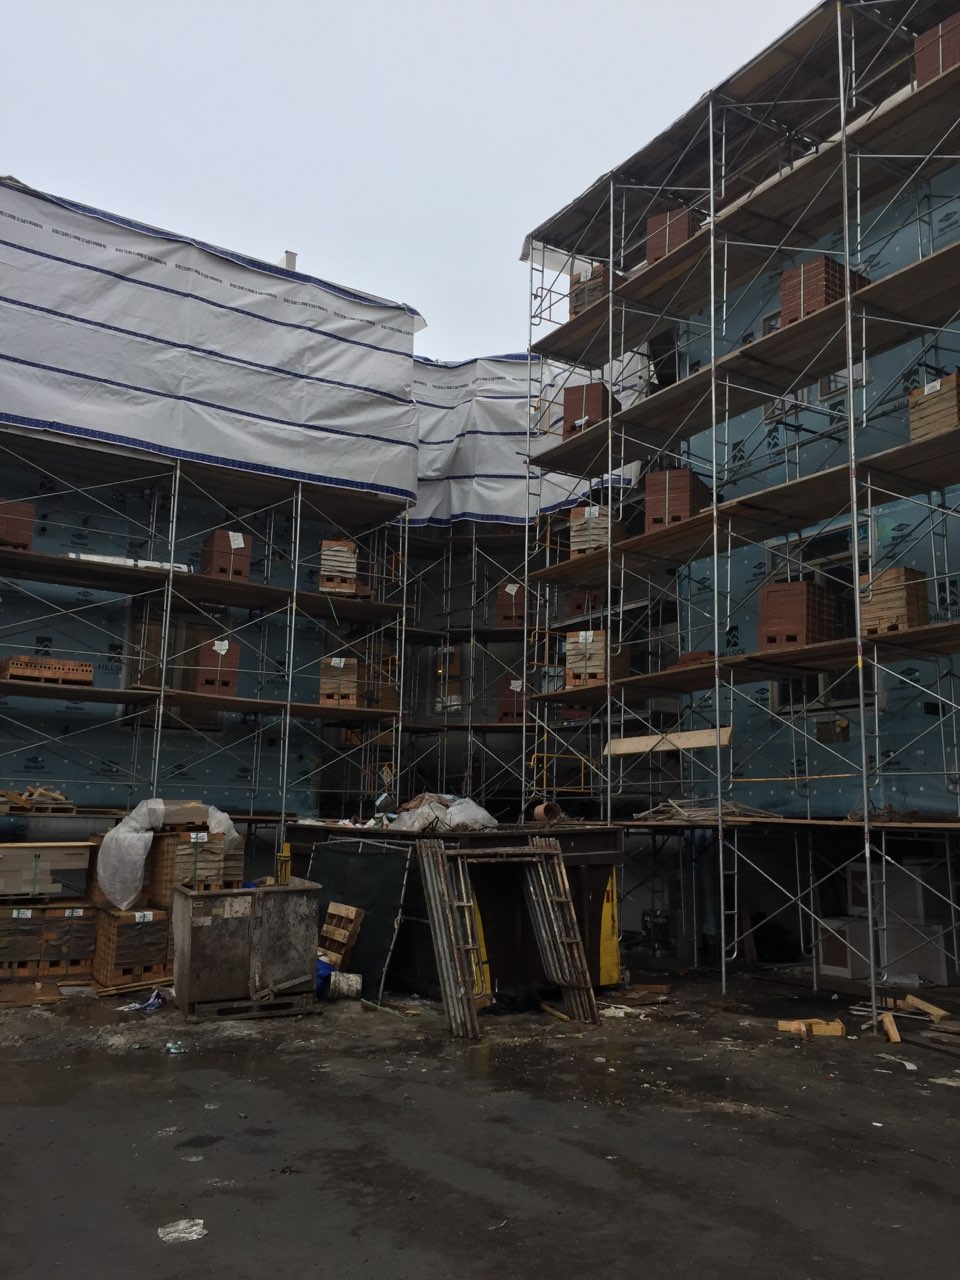 1400 S Halsted St scaffold 1